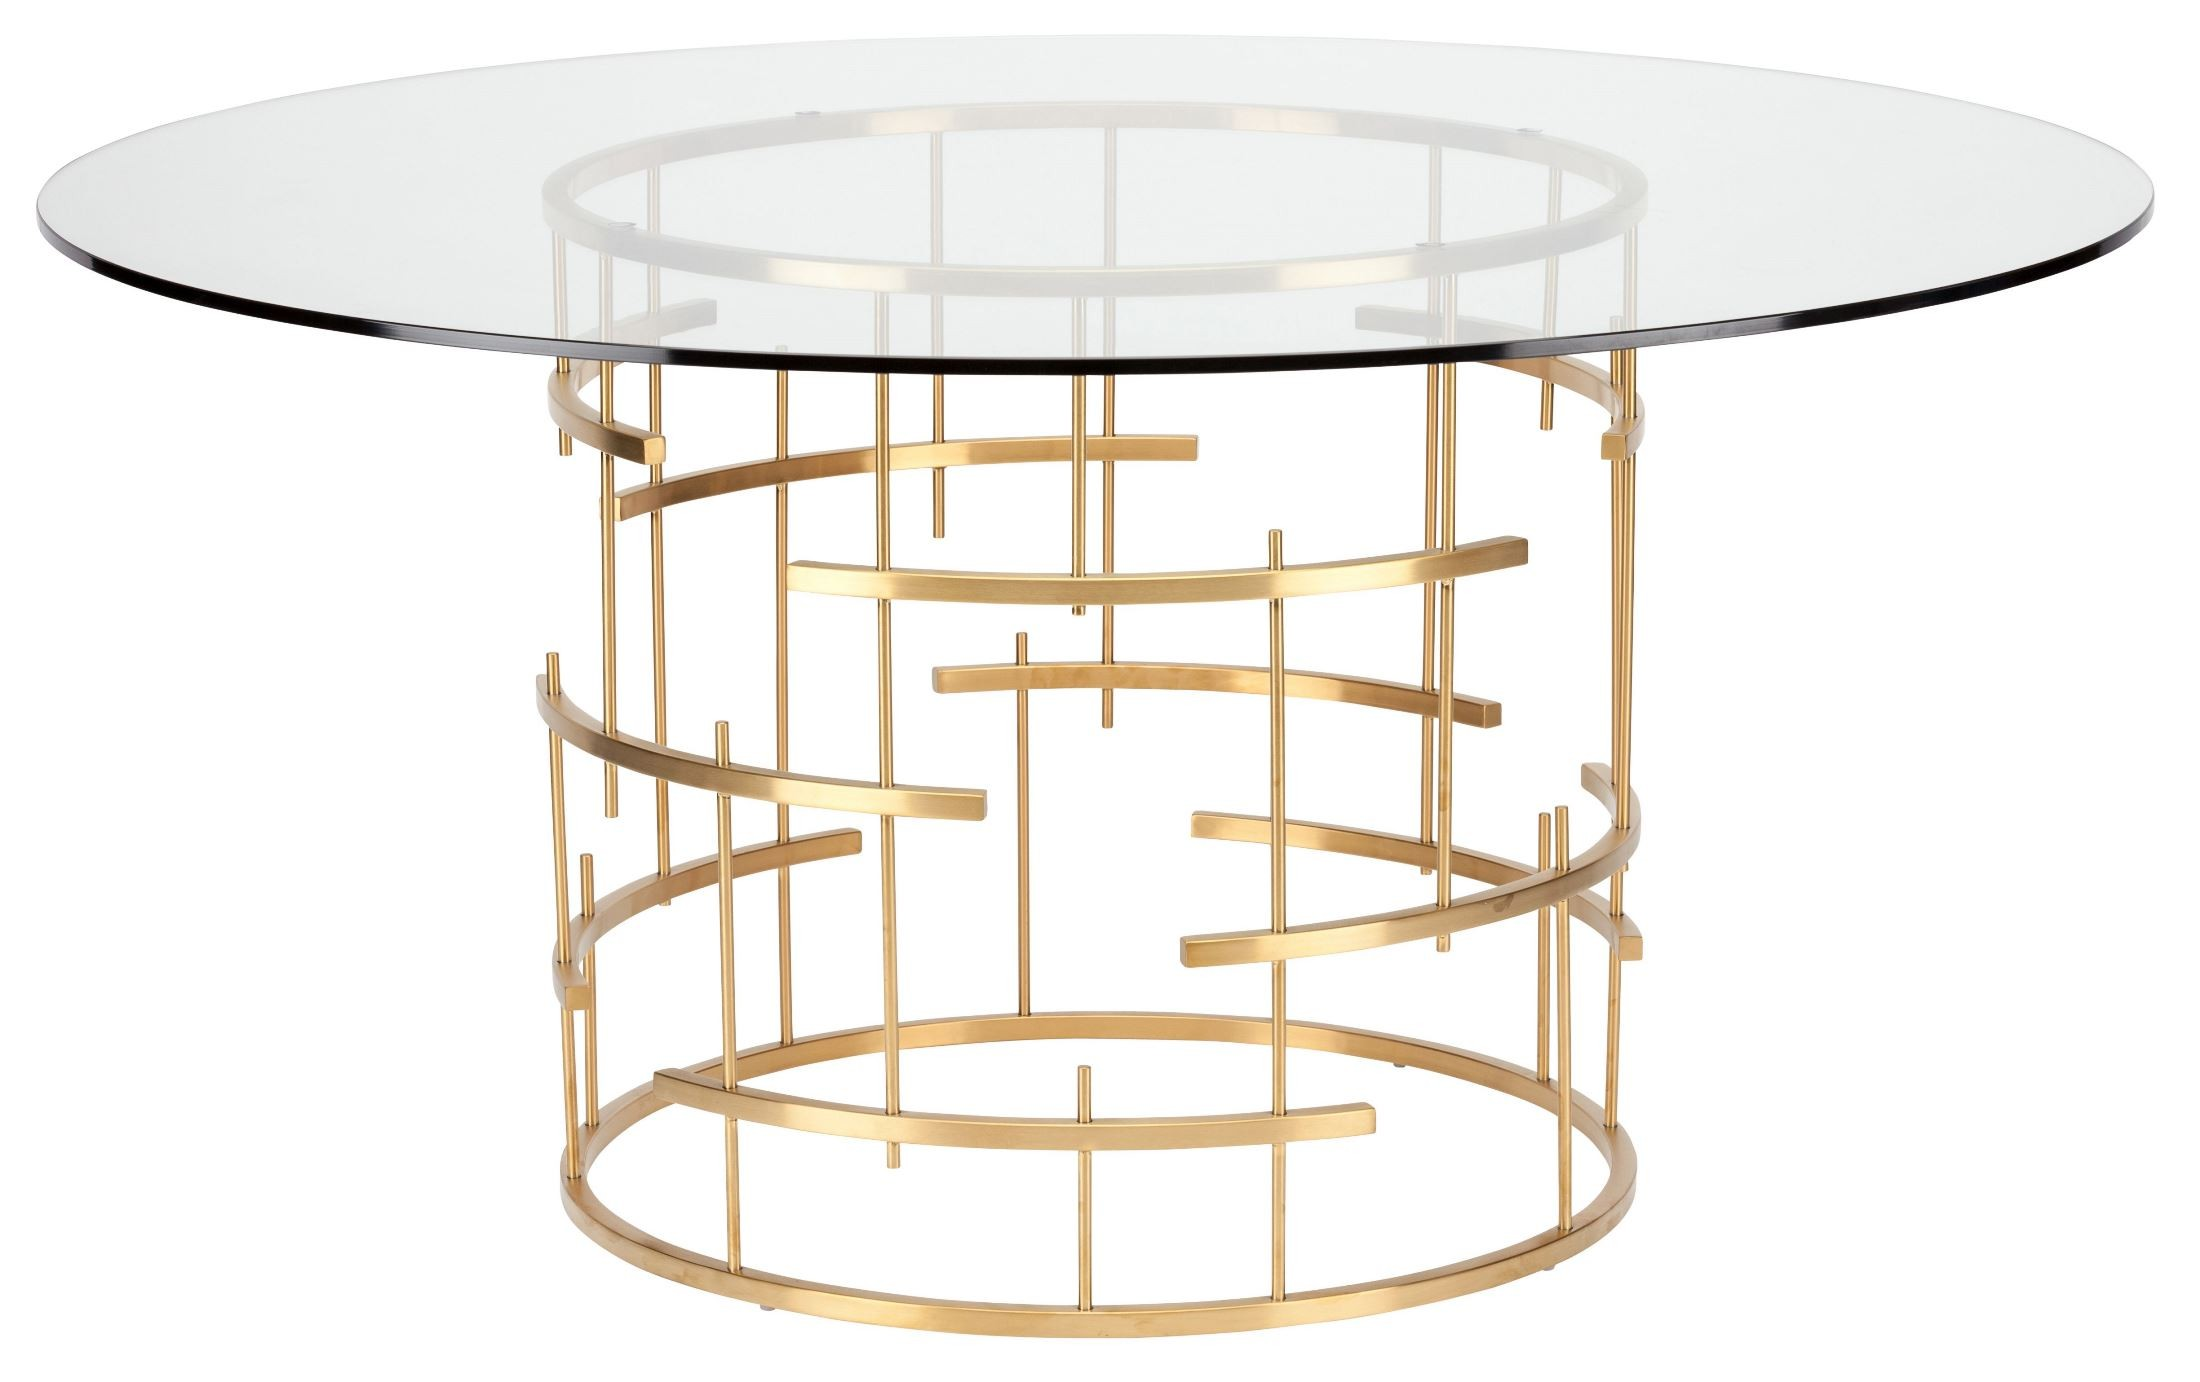 round 59 tiffany clear glass and gold metal dining table from nuevo coleman furniture. Black Bedroom Furniture Sets. Home Design Ideas